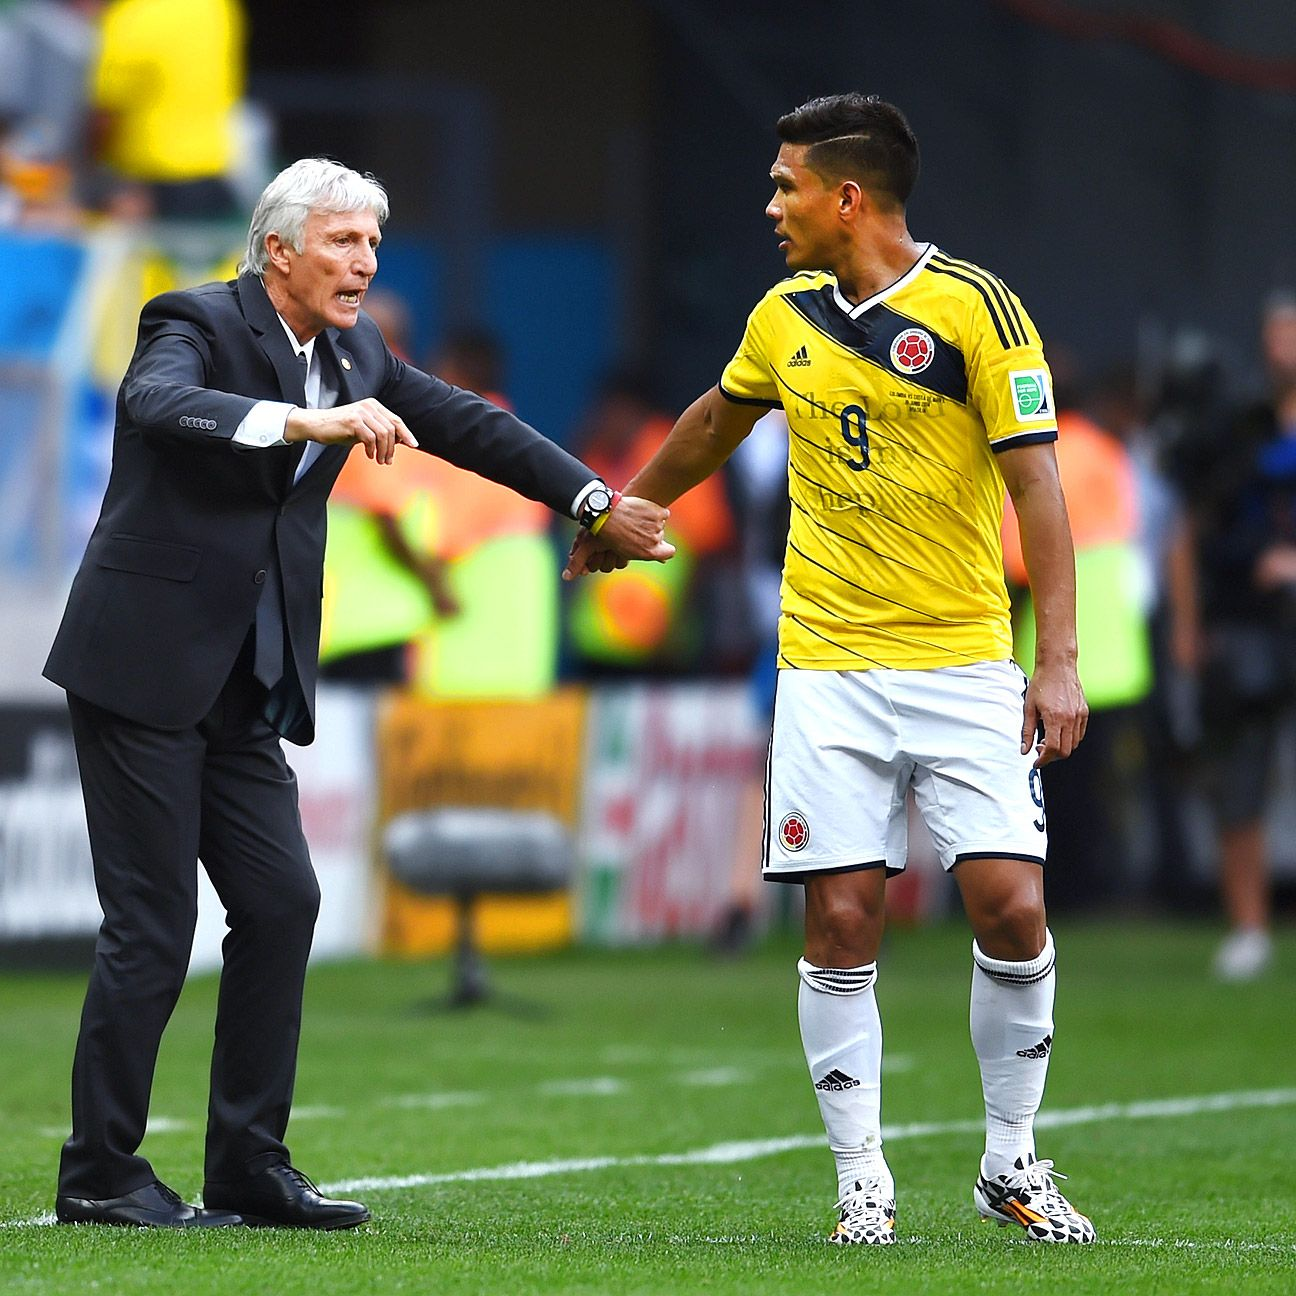 Head coach Jose Pekerman, with striker Teo Gutierrez, has inspired Colombia to two straight wins to open the World Cup.